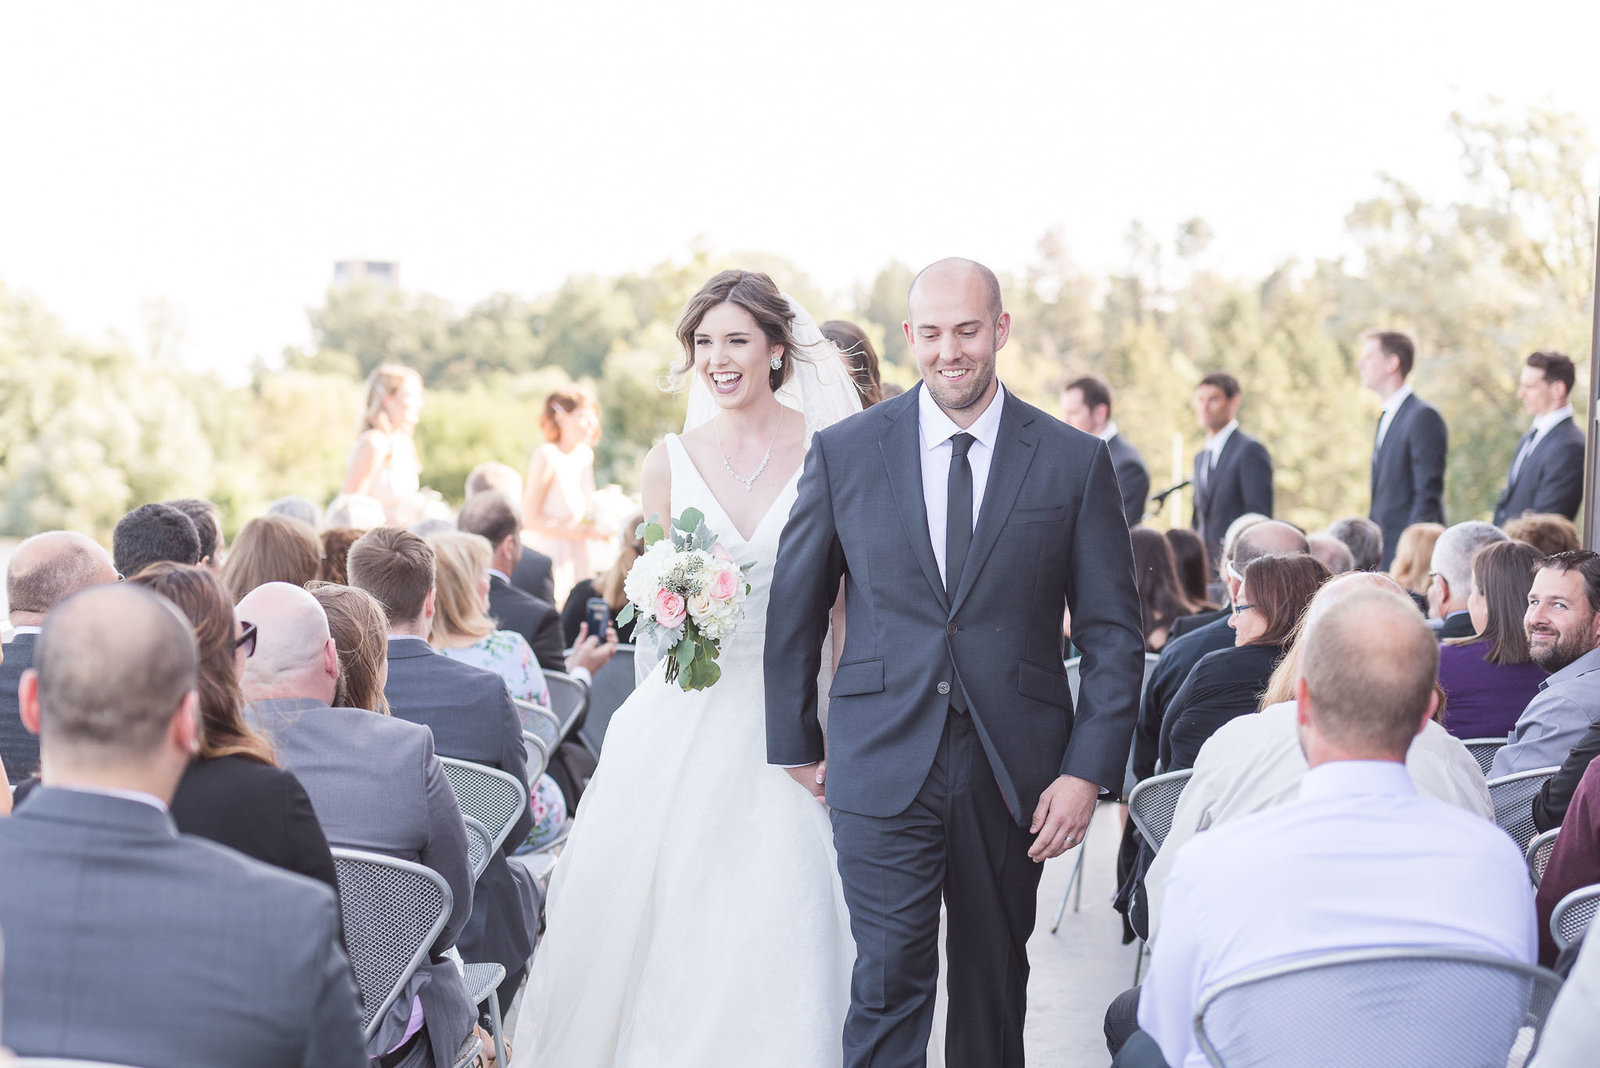 Erin-Kyle-Wedding-161043